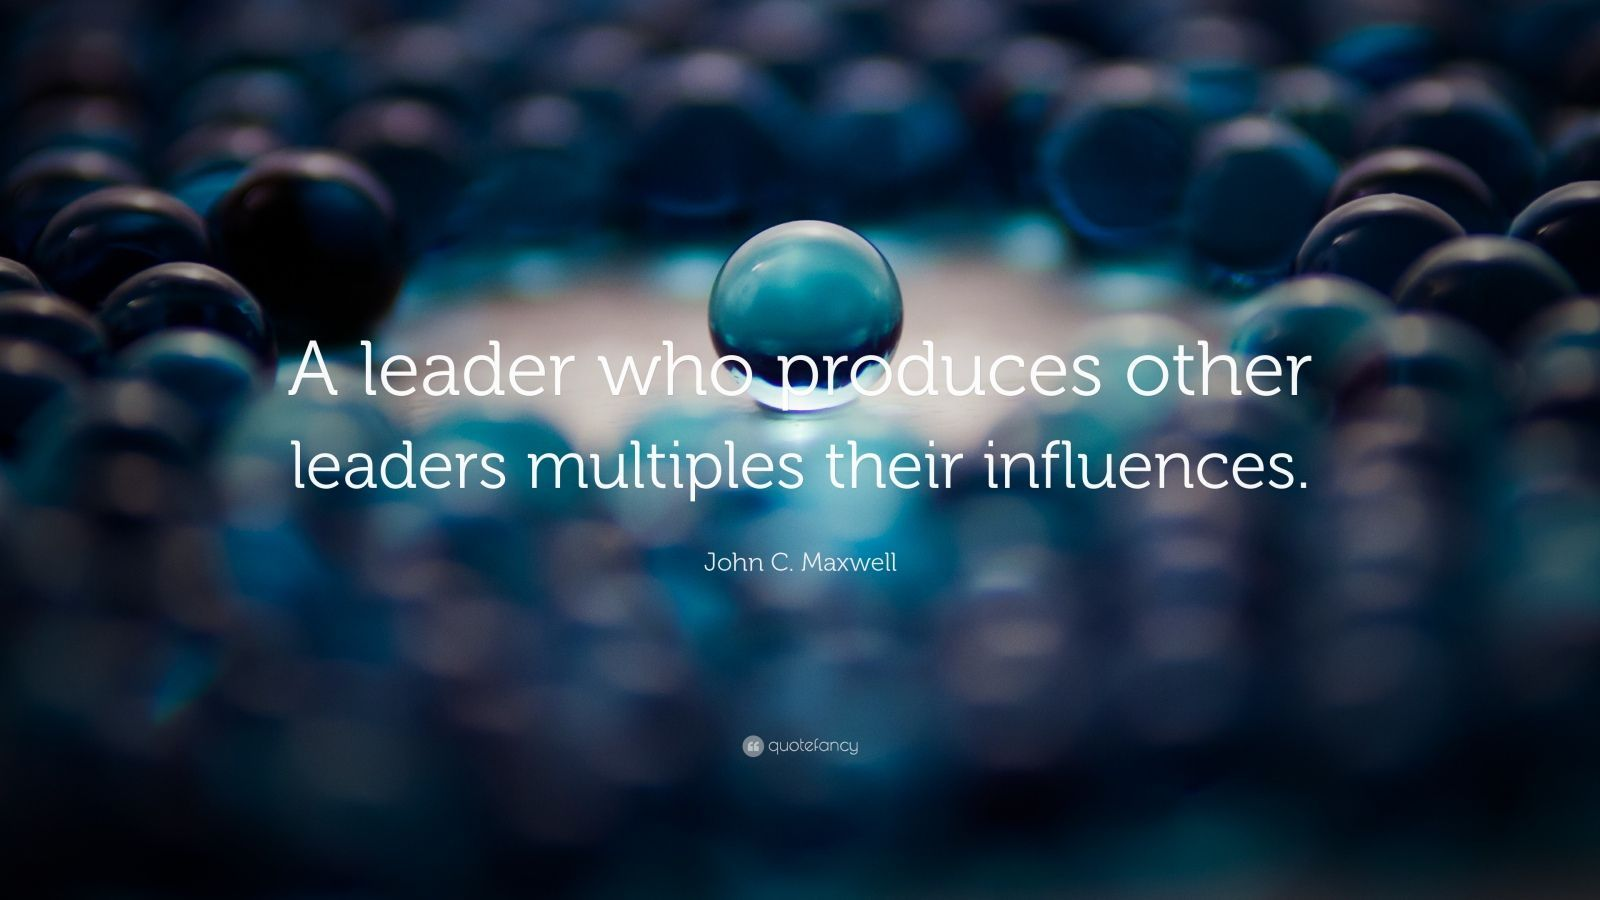 1600x900 Leadership Quotes (100 wallpapers) - Quotefancy